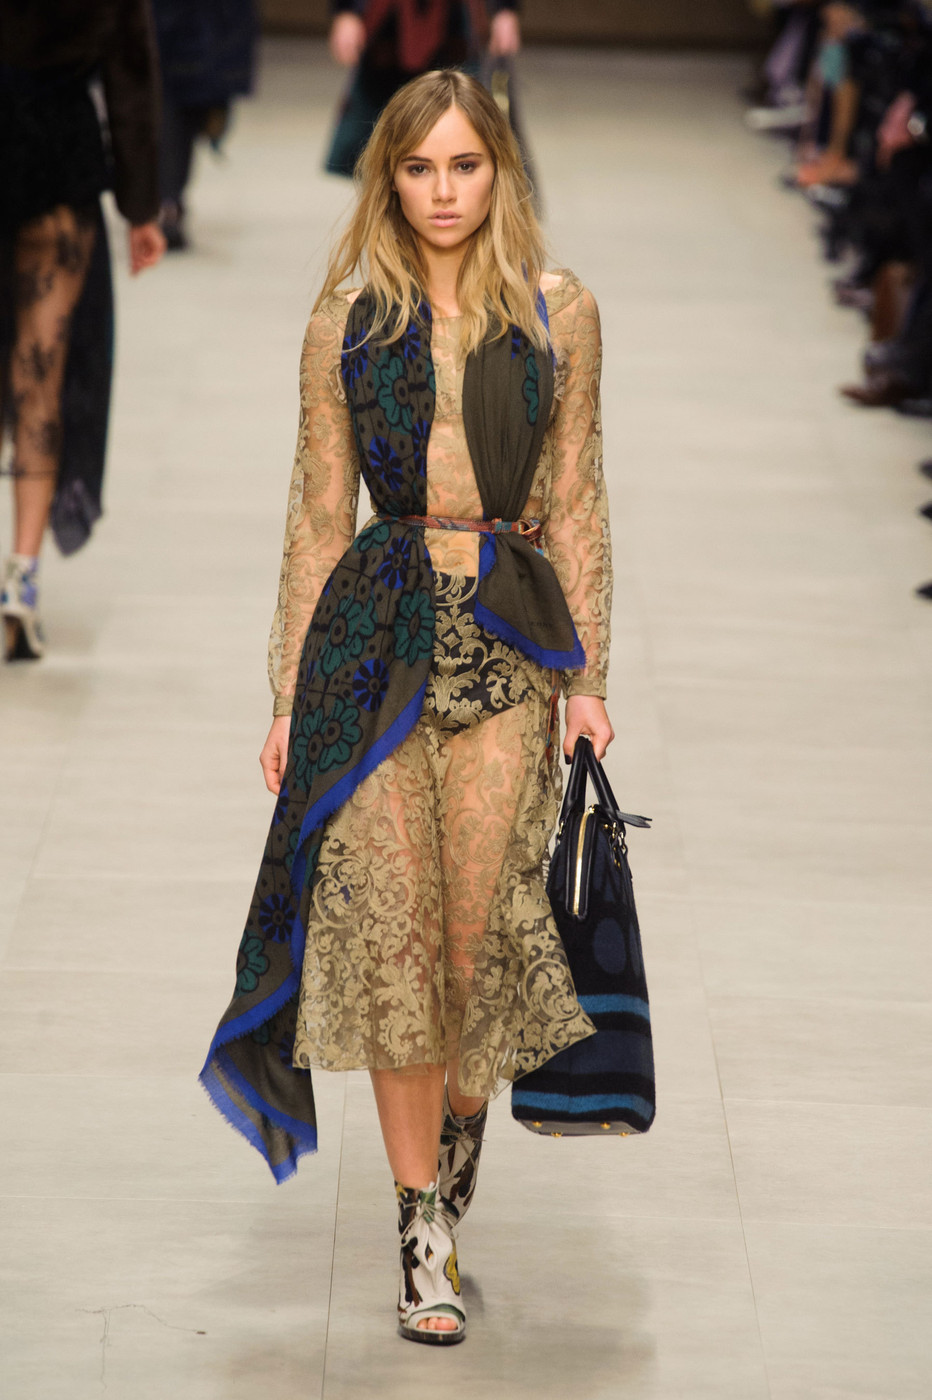 London Fashion Week Fall 2014, Burberry Prorsum